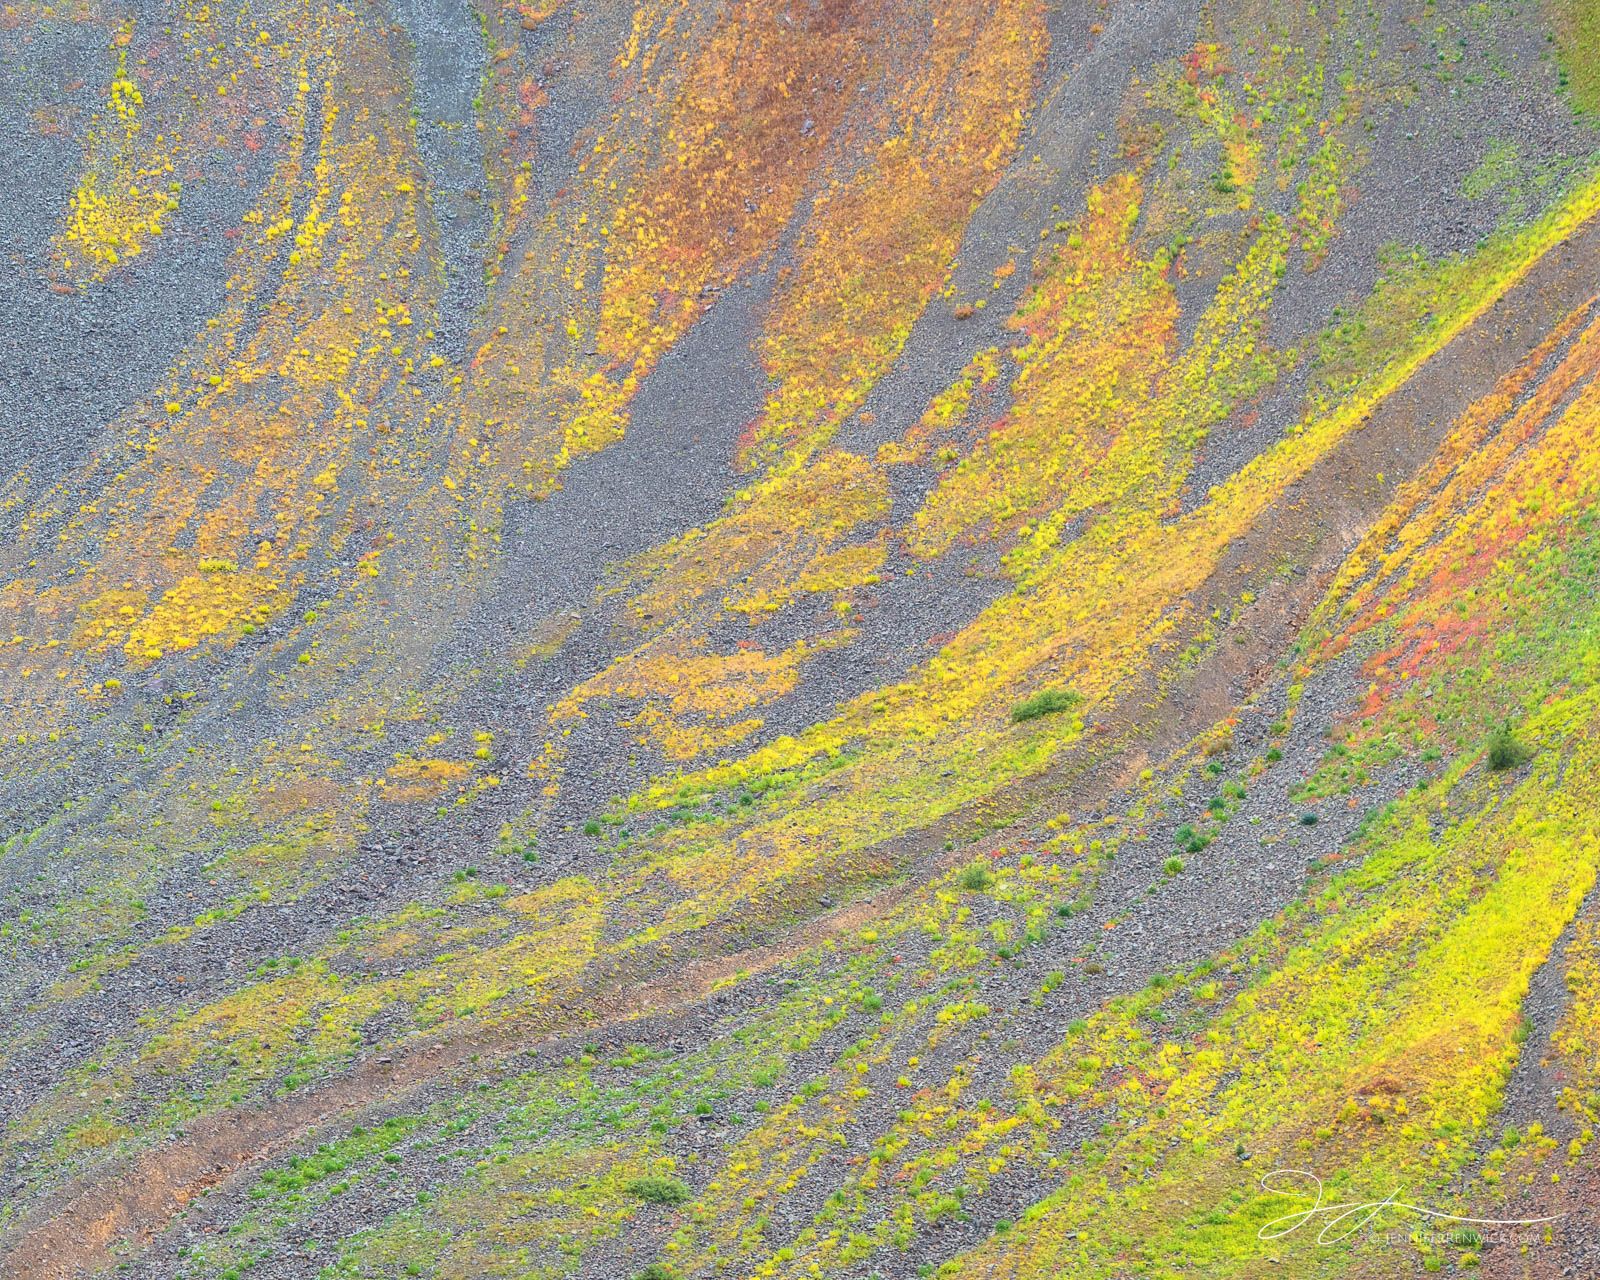 Colorful, autumn tundra covers the scree fields up in a high alpine basin in Colorado.